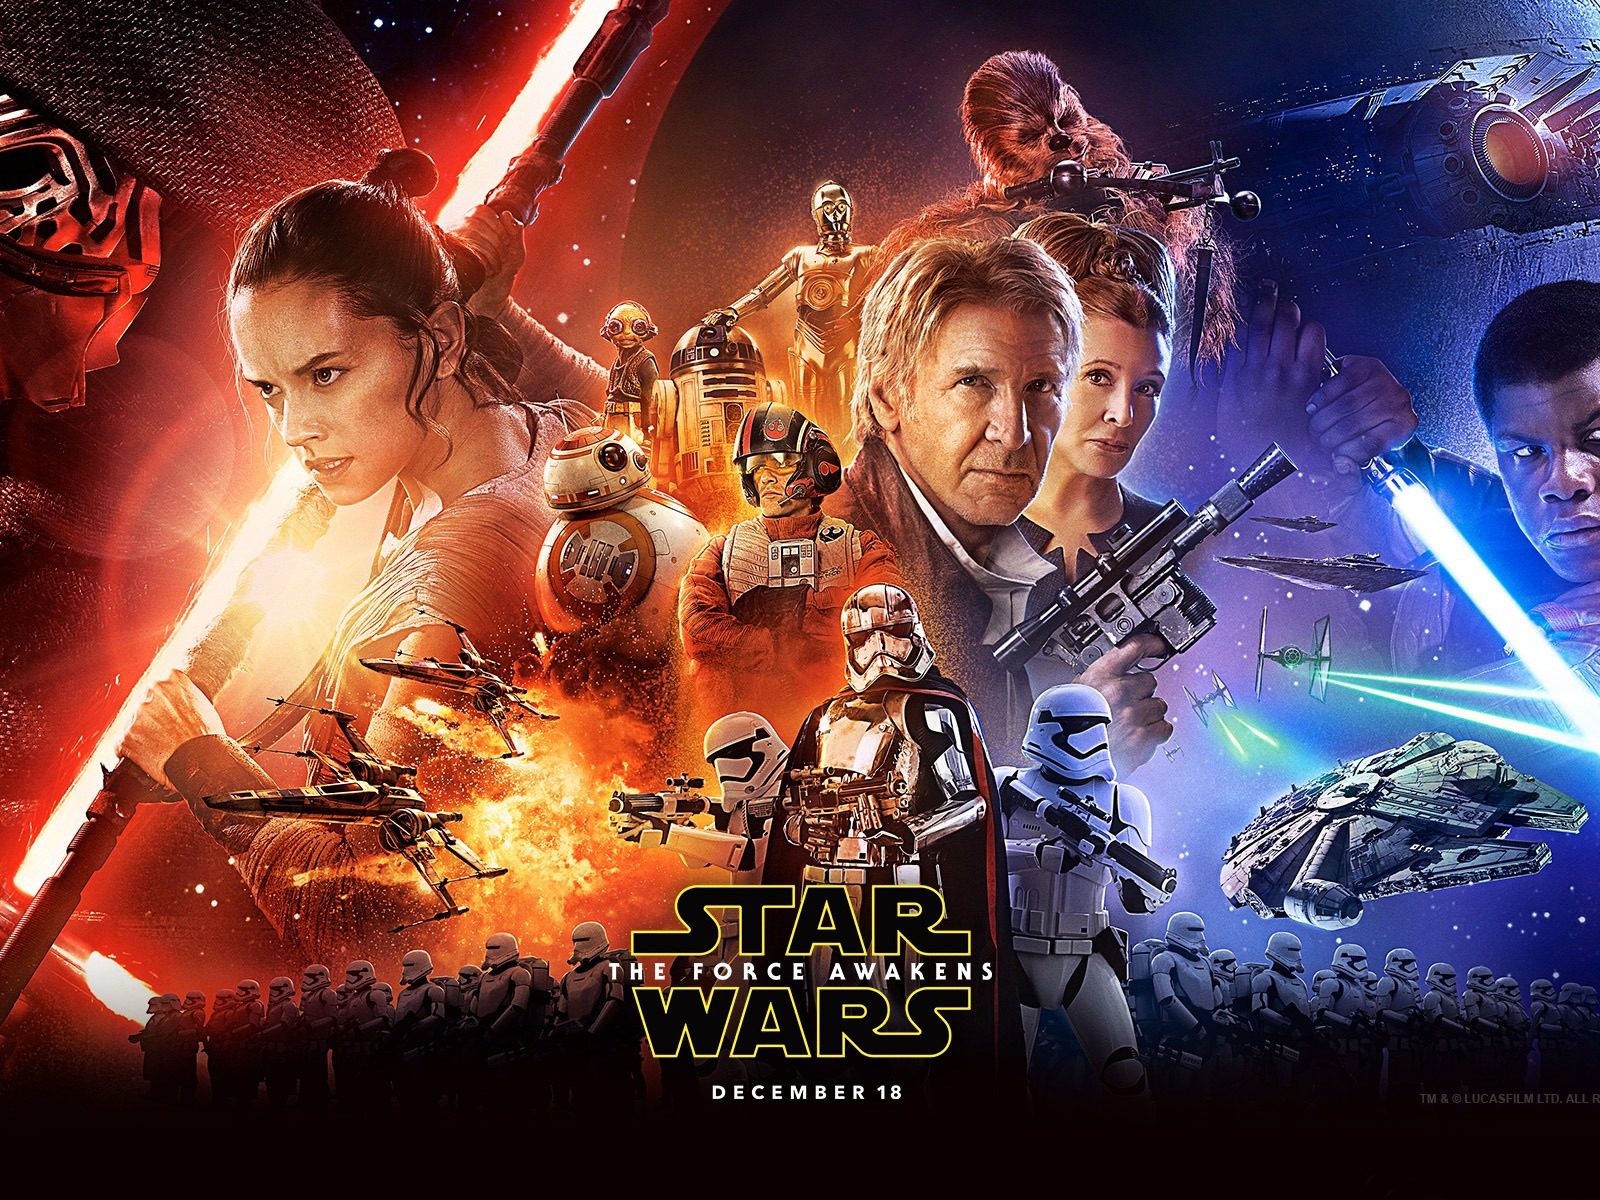 Star Wars The Force Awakens 2015 Hd Wallpaper 15 Preview